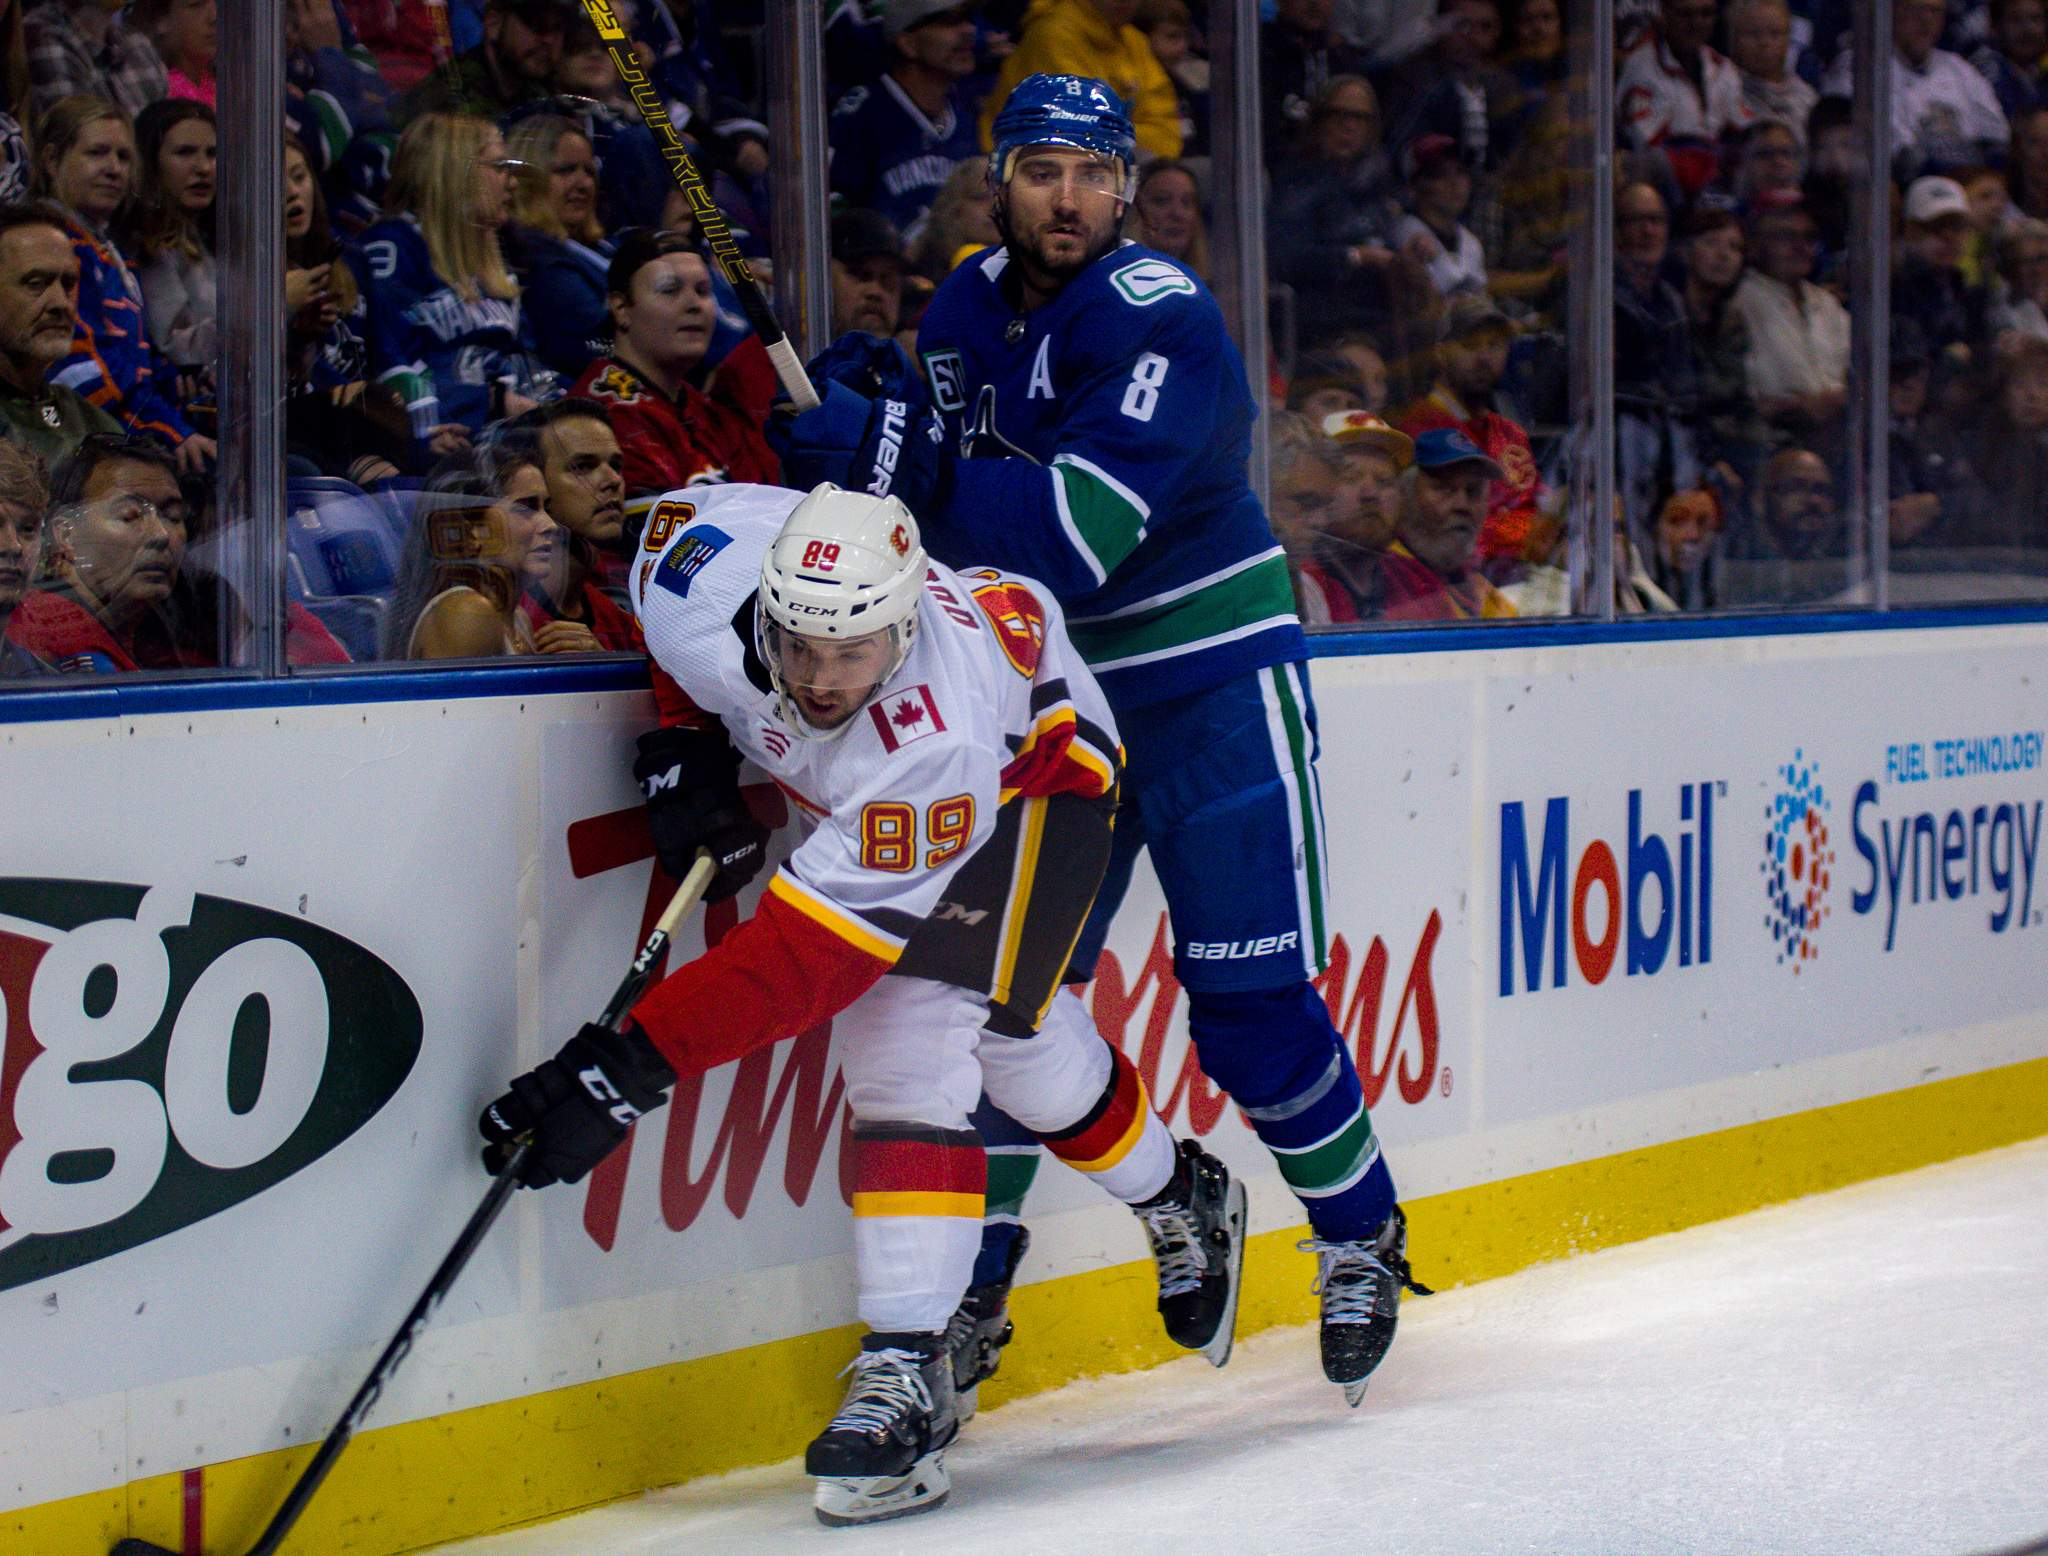 Canucks' Chris Tanev battles Flames' Alan Quine for the puck. Photo by Nathanael Laranjeiras (ISN)